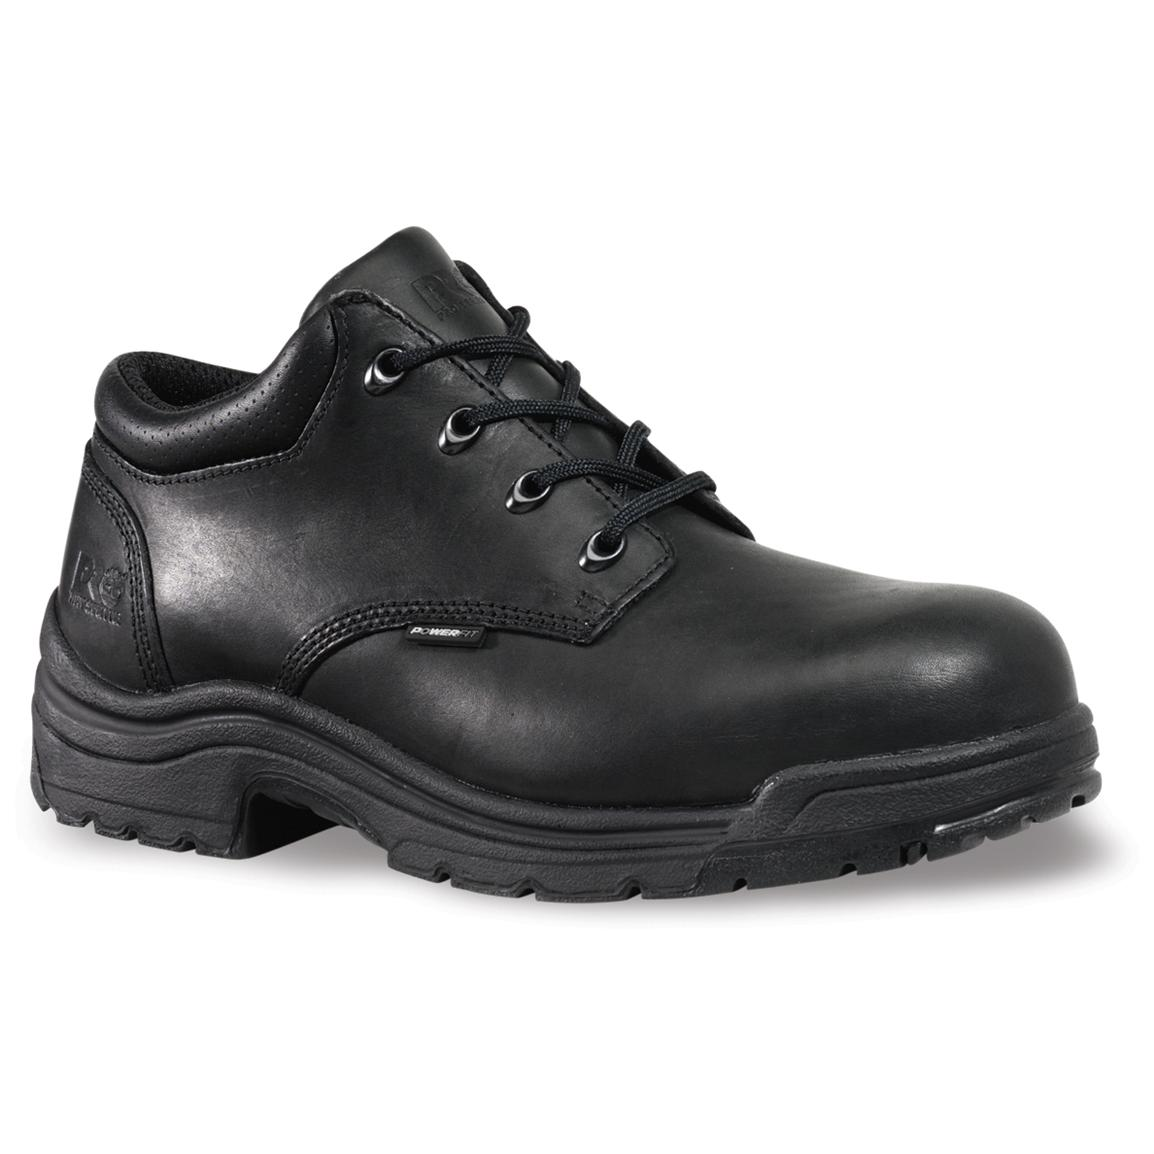 Men's Timberland® Pro® Titan® Safety Toe Oxford Shoes, Black